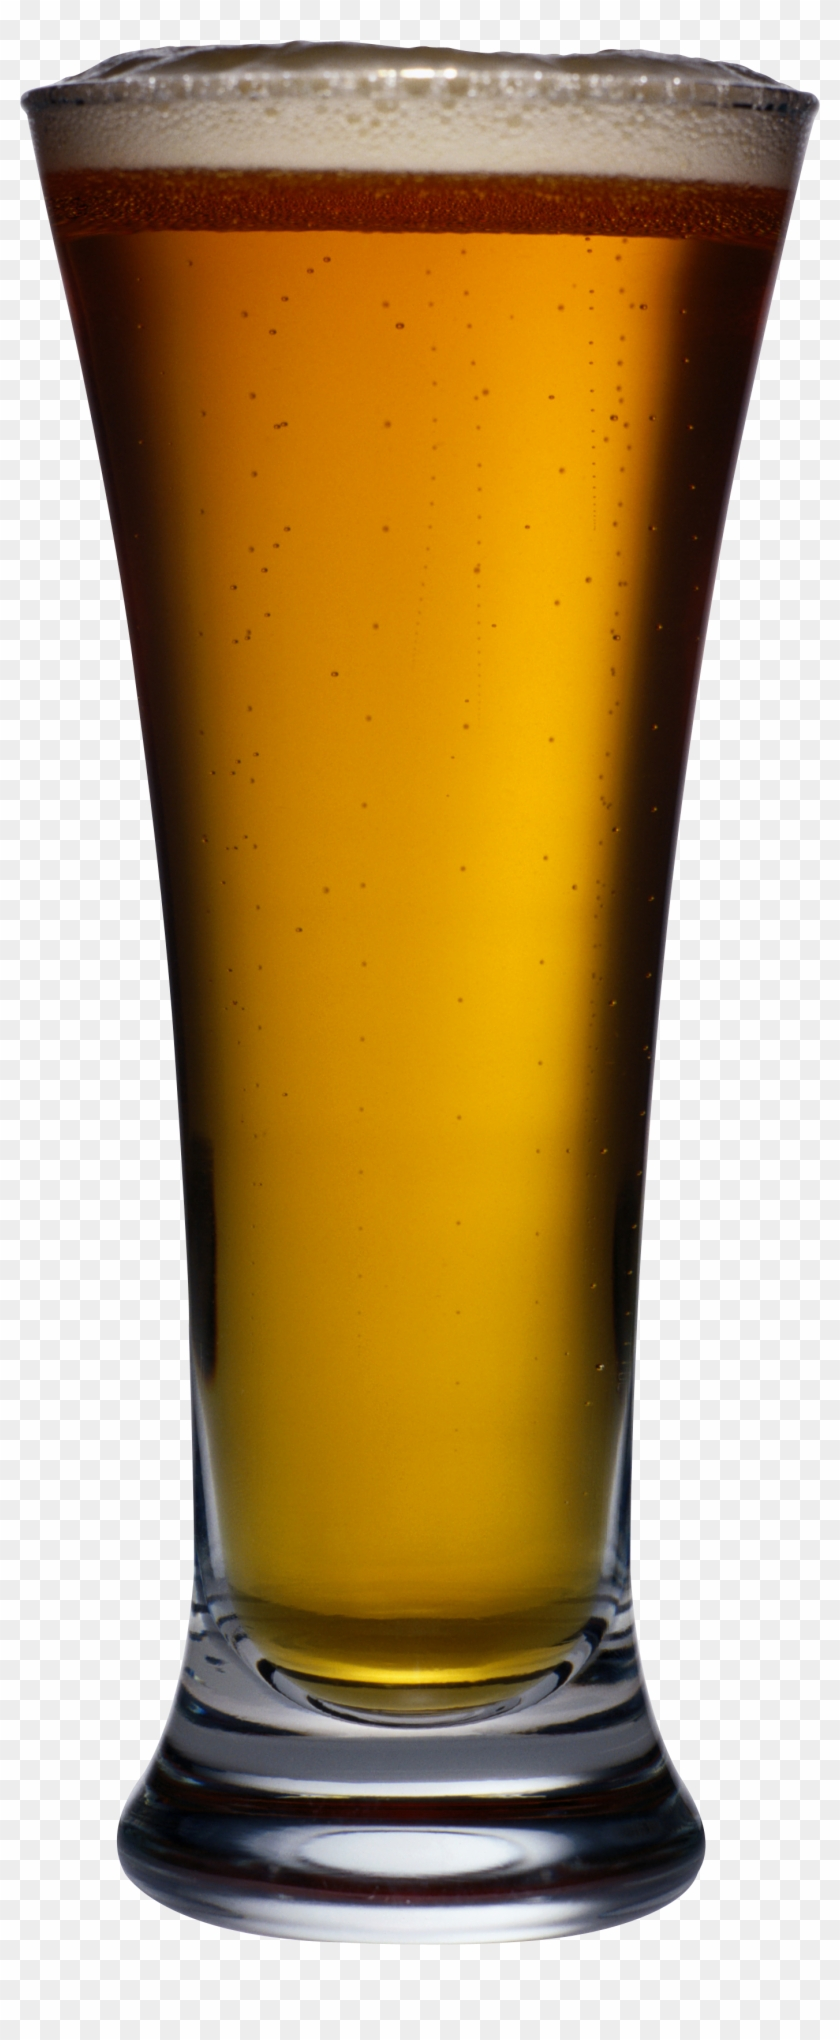 Goblet Beer Png Image - Glass Of Beer Png #330367